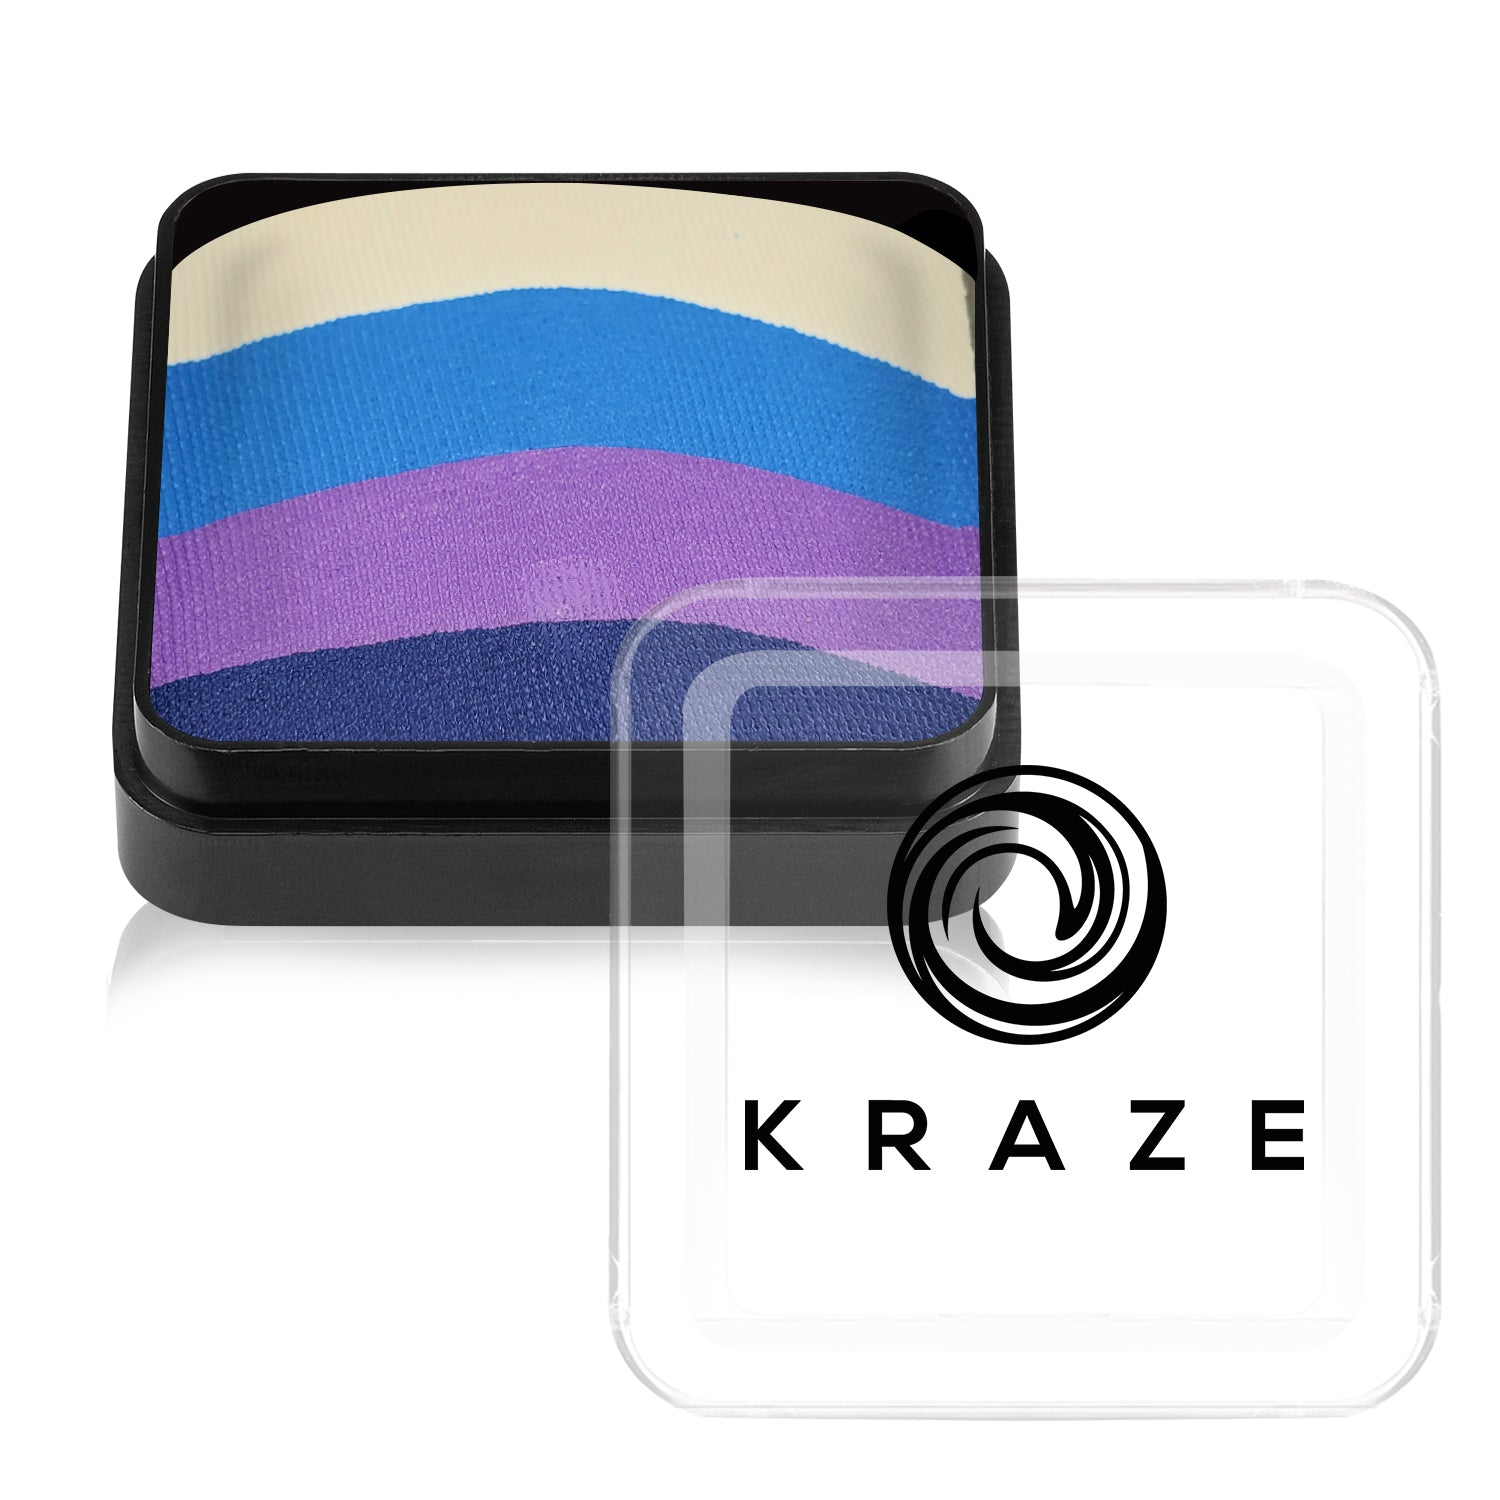 Kraze Neon Dome Cake - 25 gm - Twilight